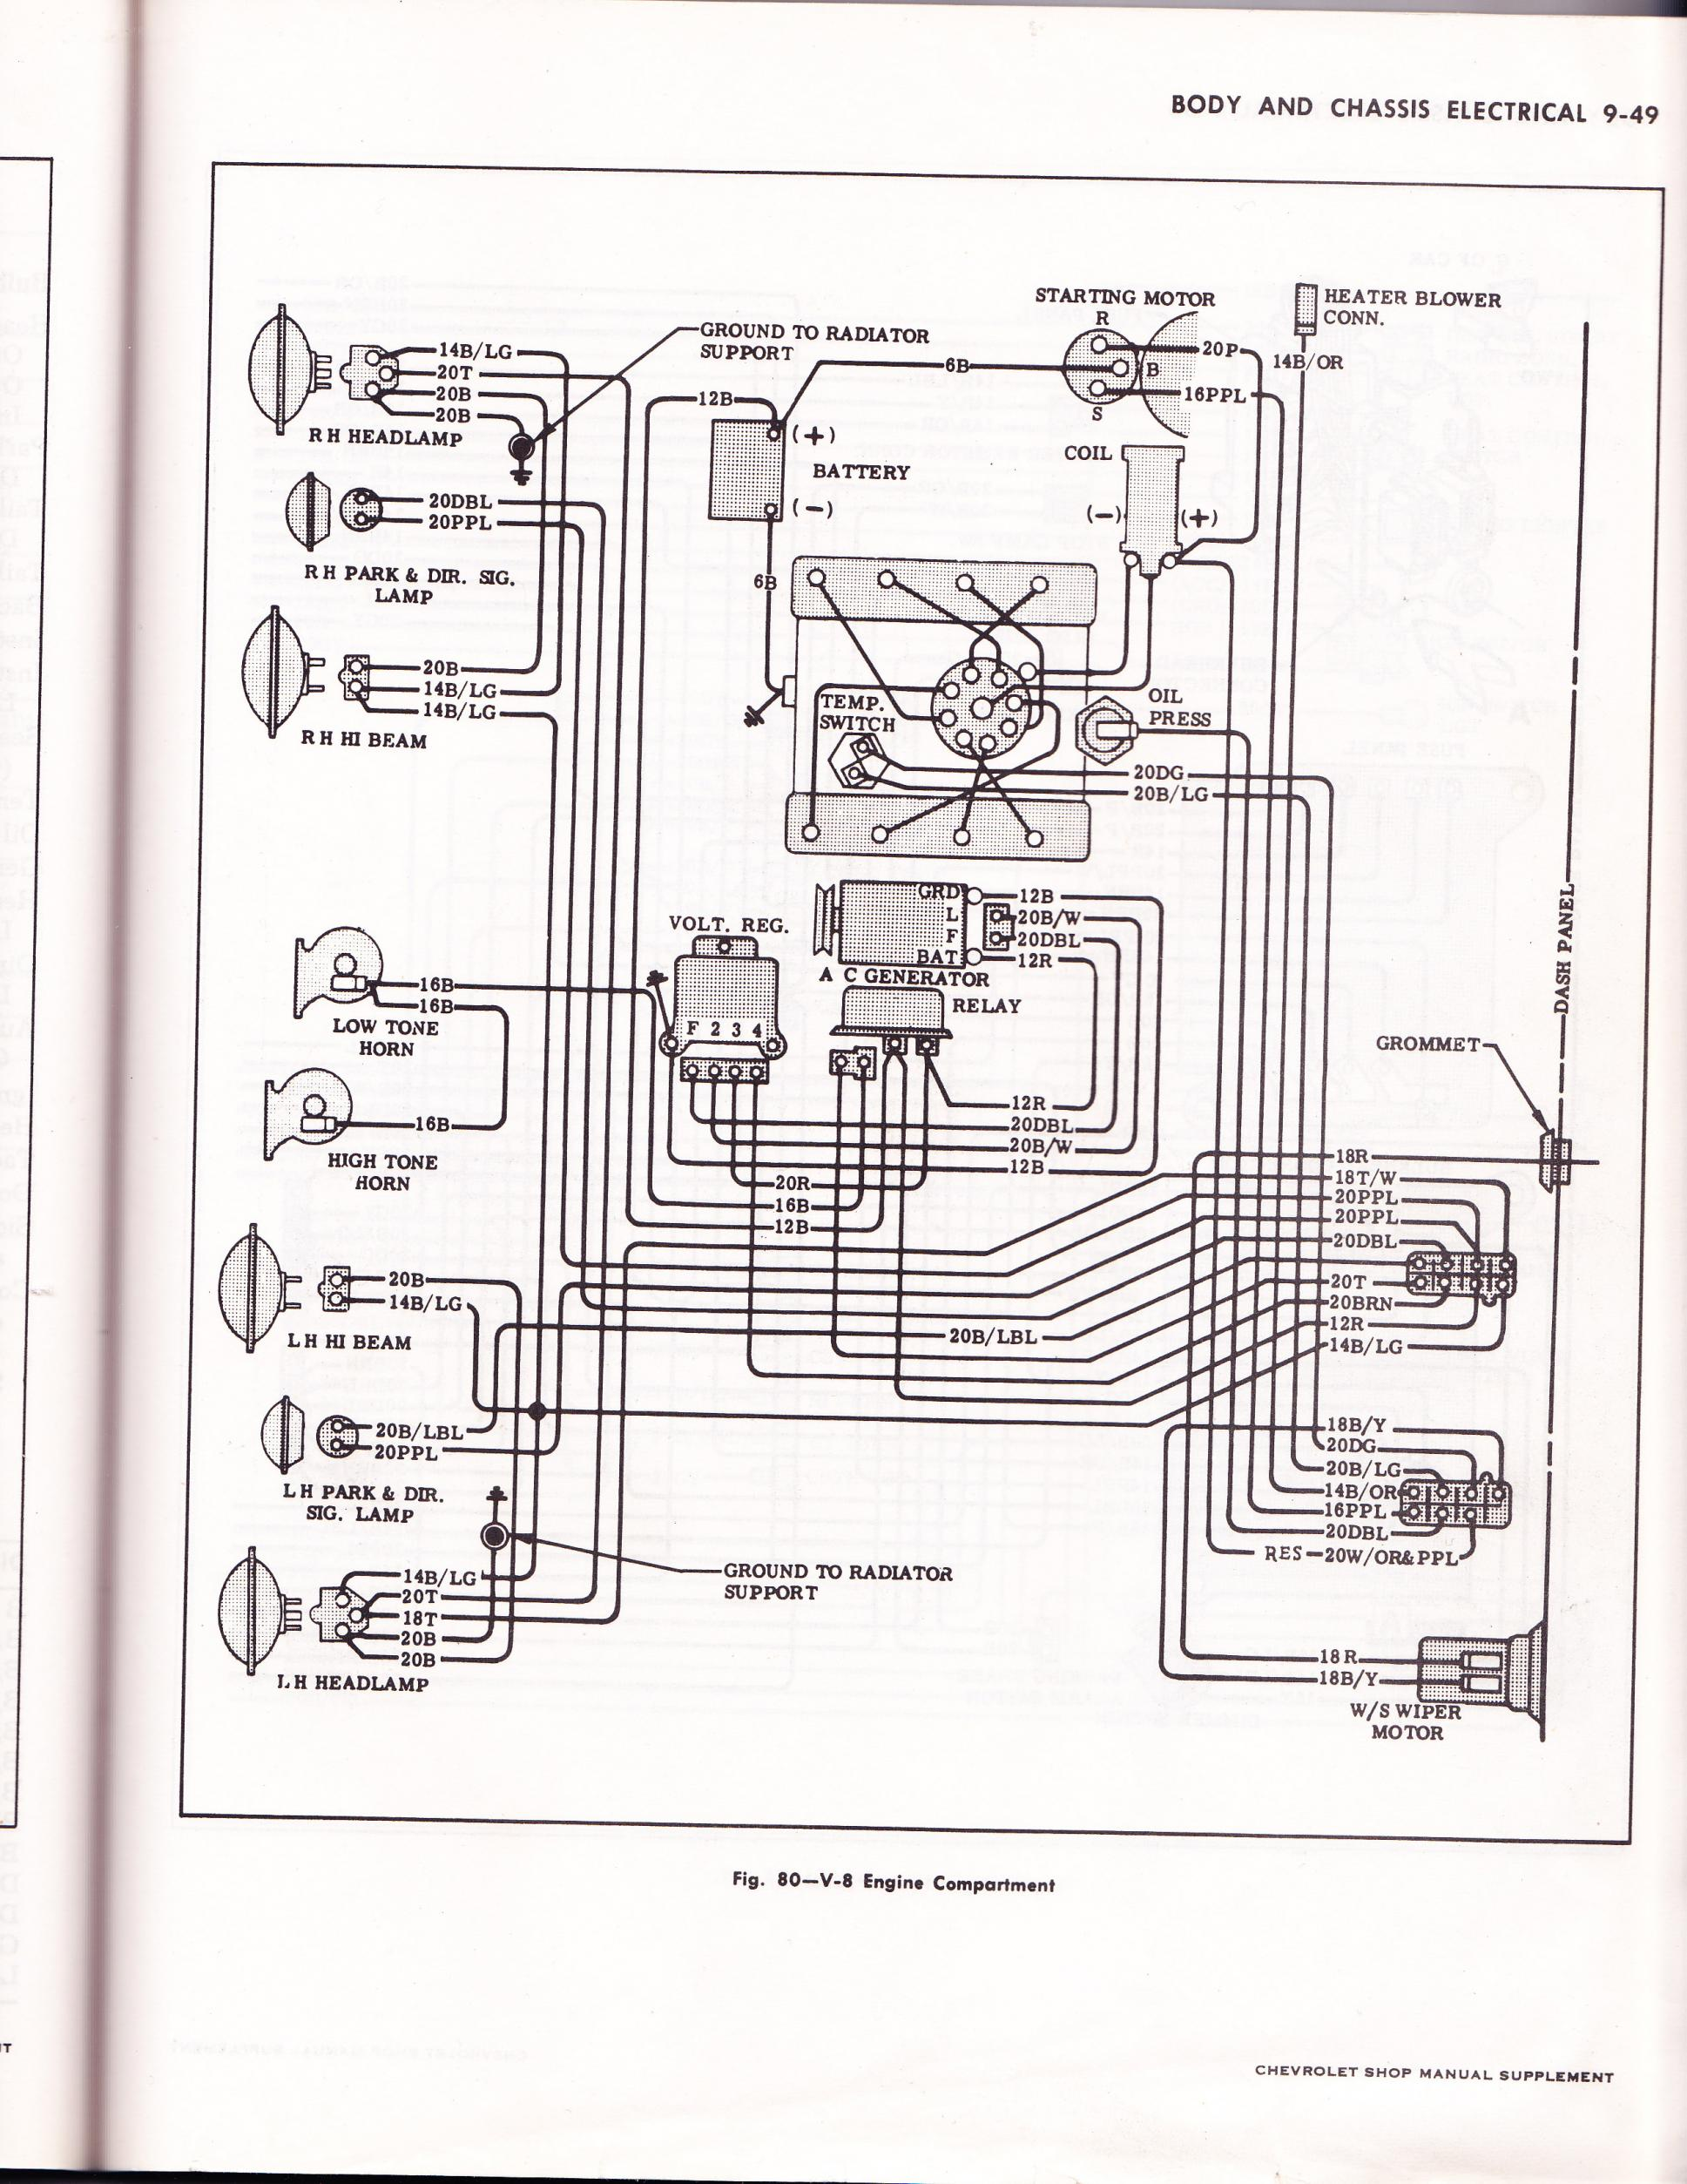 1991 Chevy Silverado Fuse Box Diagram • Wiring Diagram For